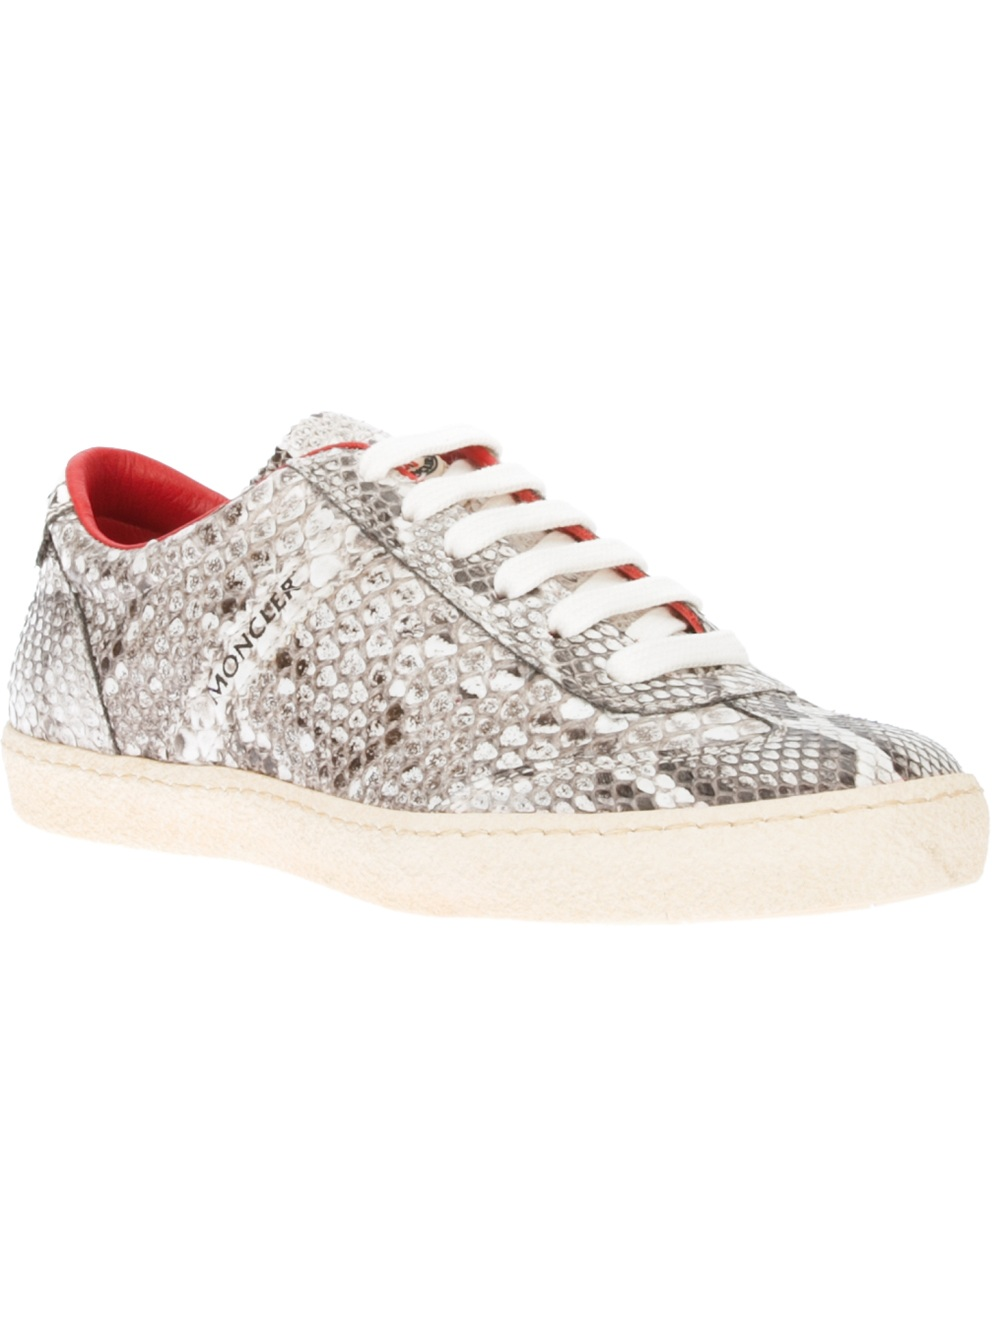 Moncler Snakeskin Trainer in Red - Lyst